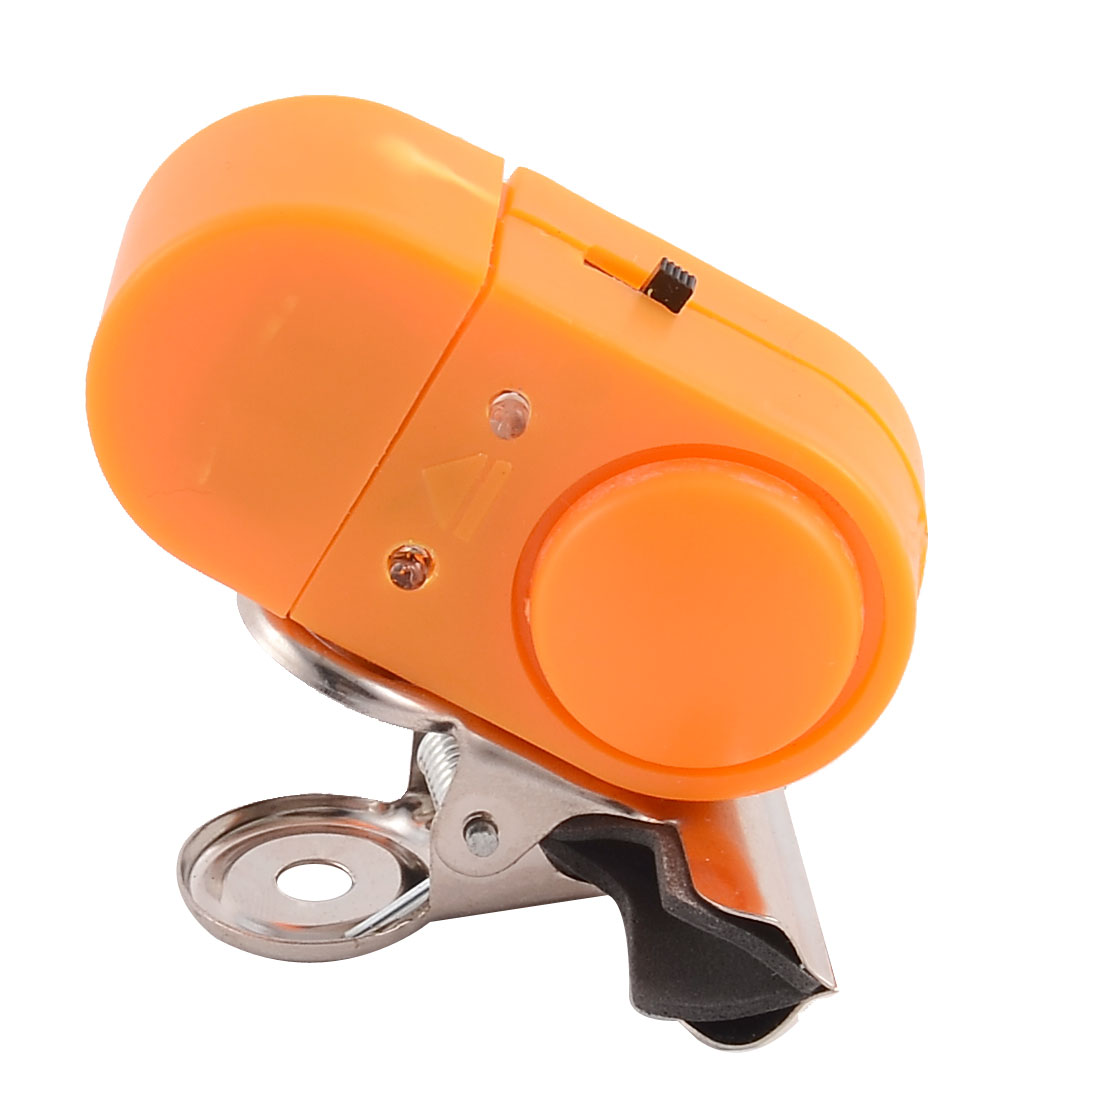 Fishing Rod Plastic Burglar Alarm LED Light Bite Alert Fish Bell Clip Orange